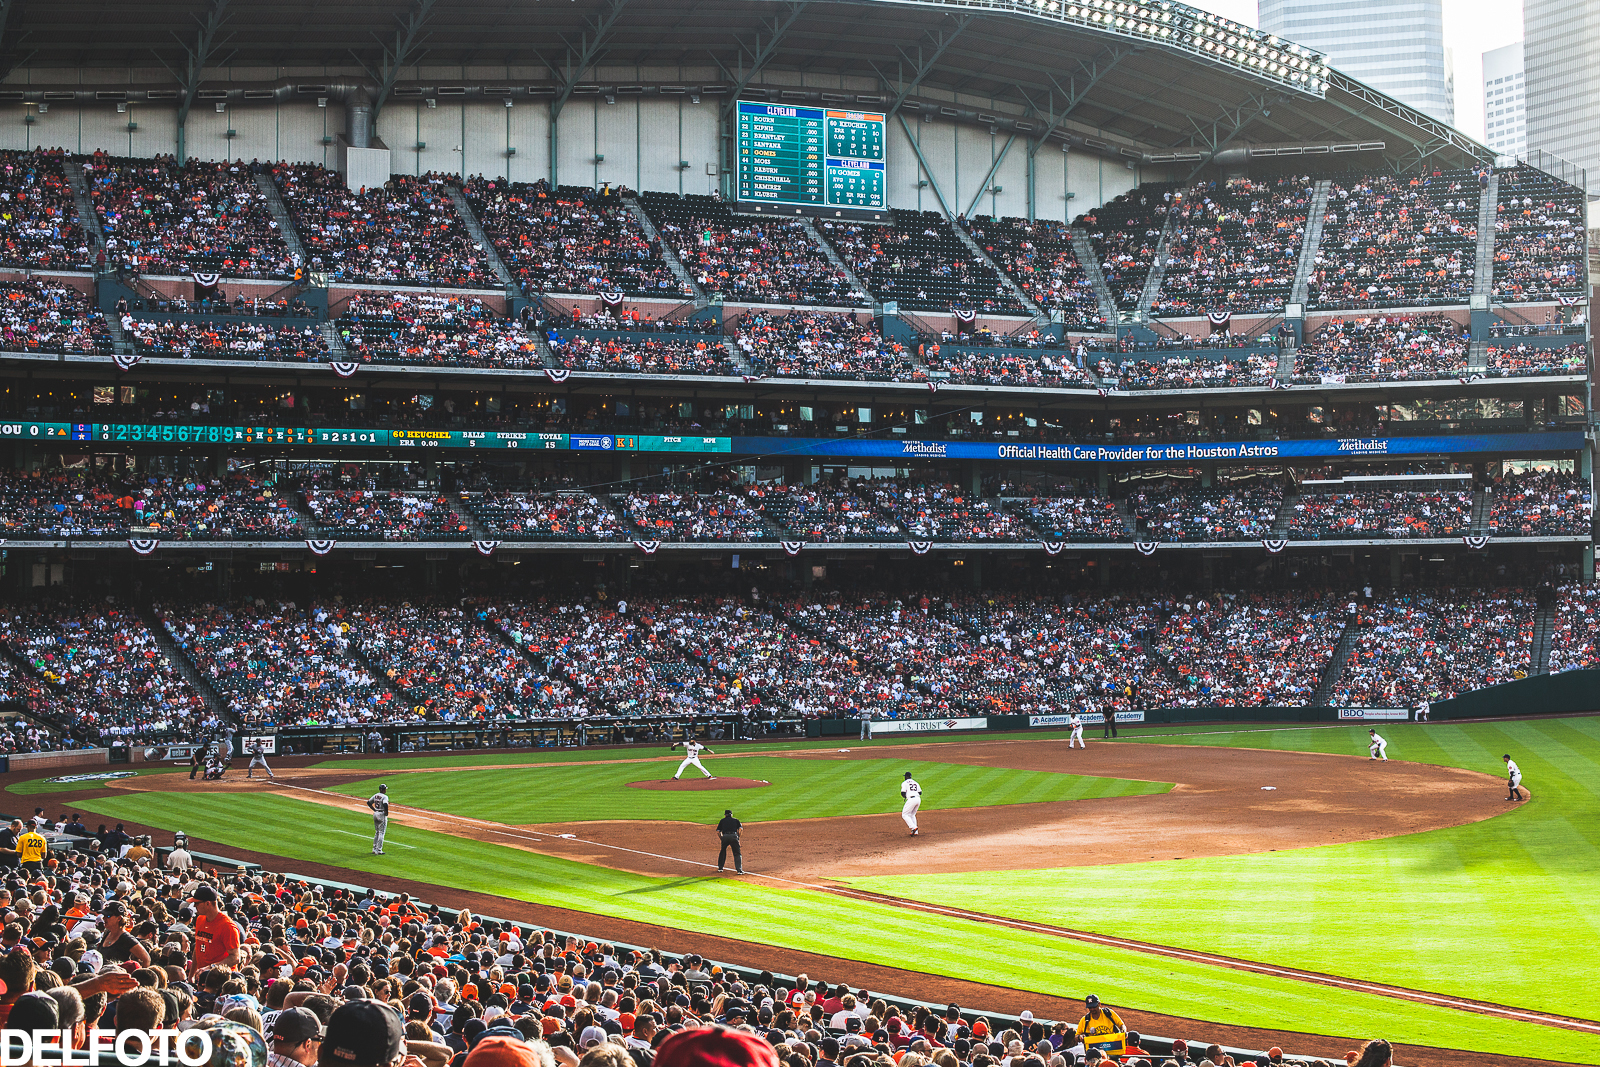 Houston Astros Home Opener 2015 Baseball Texas MLB Minute Maid Park Cleveland Indians